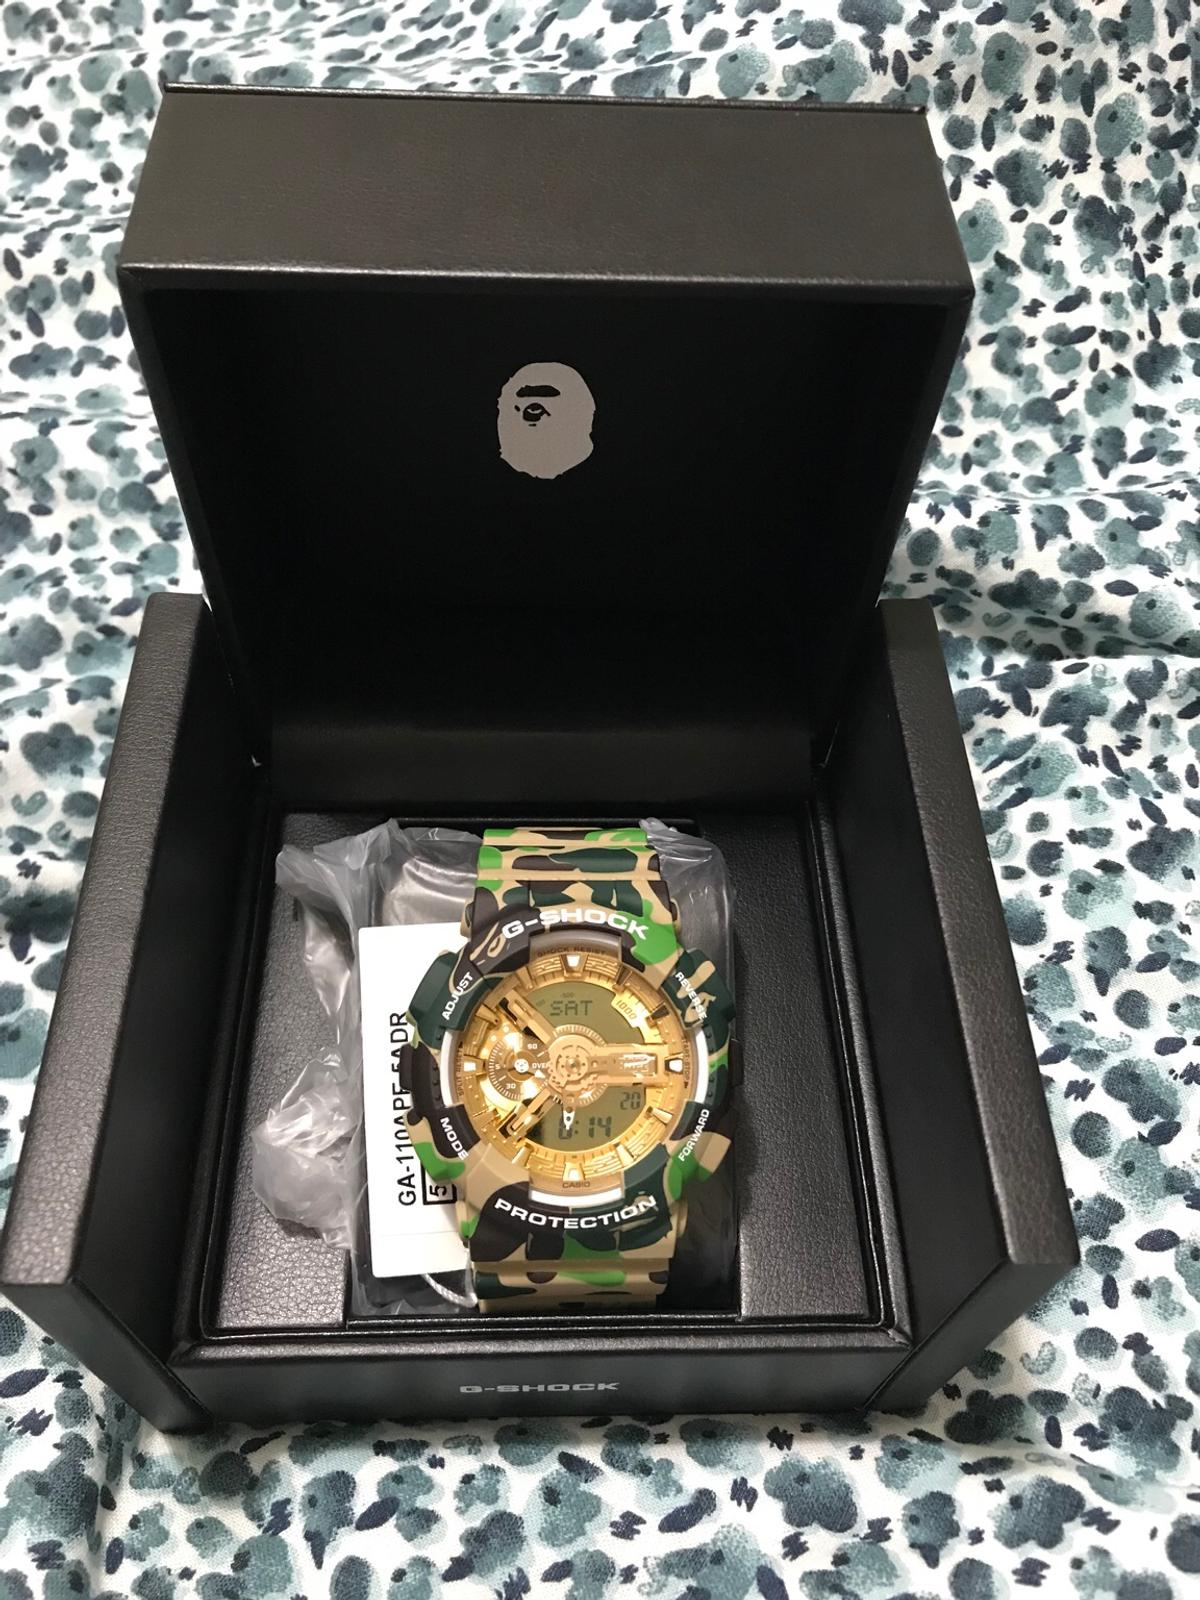 0fb211ea6 Bape x G-shock watch limited edition!!! in W1S Westminster for ...